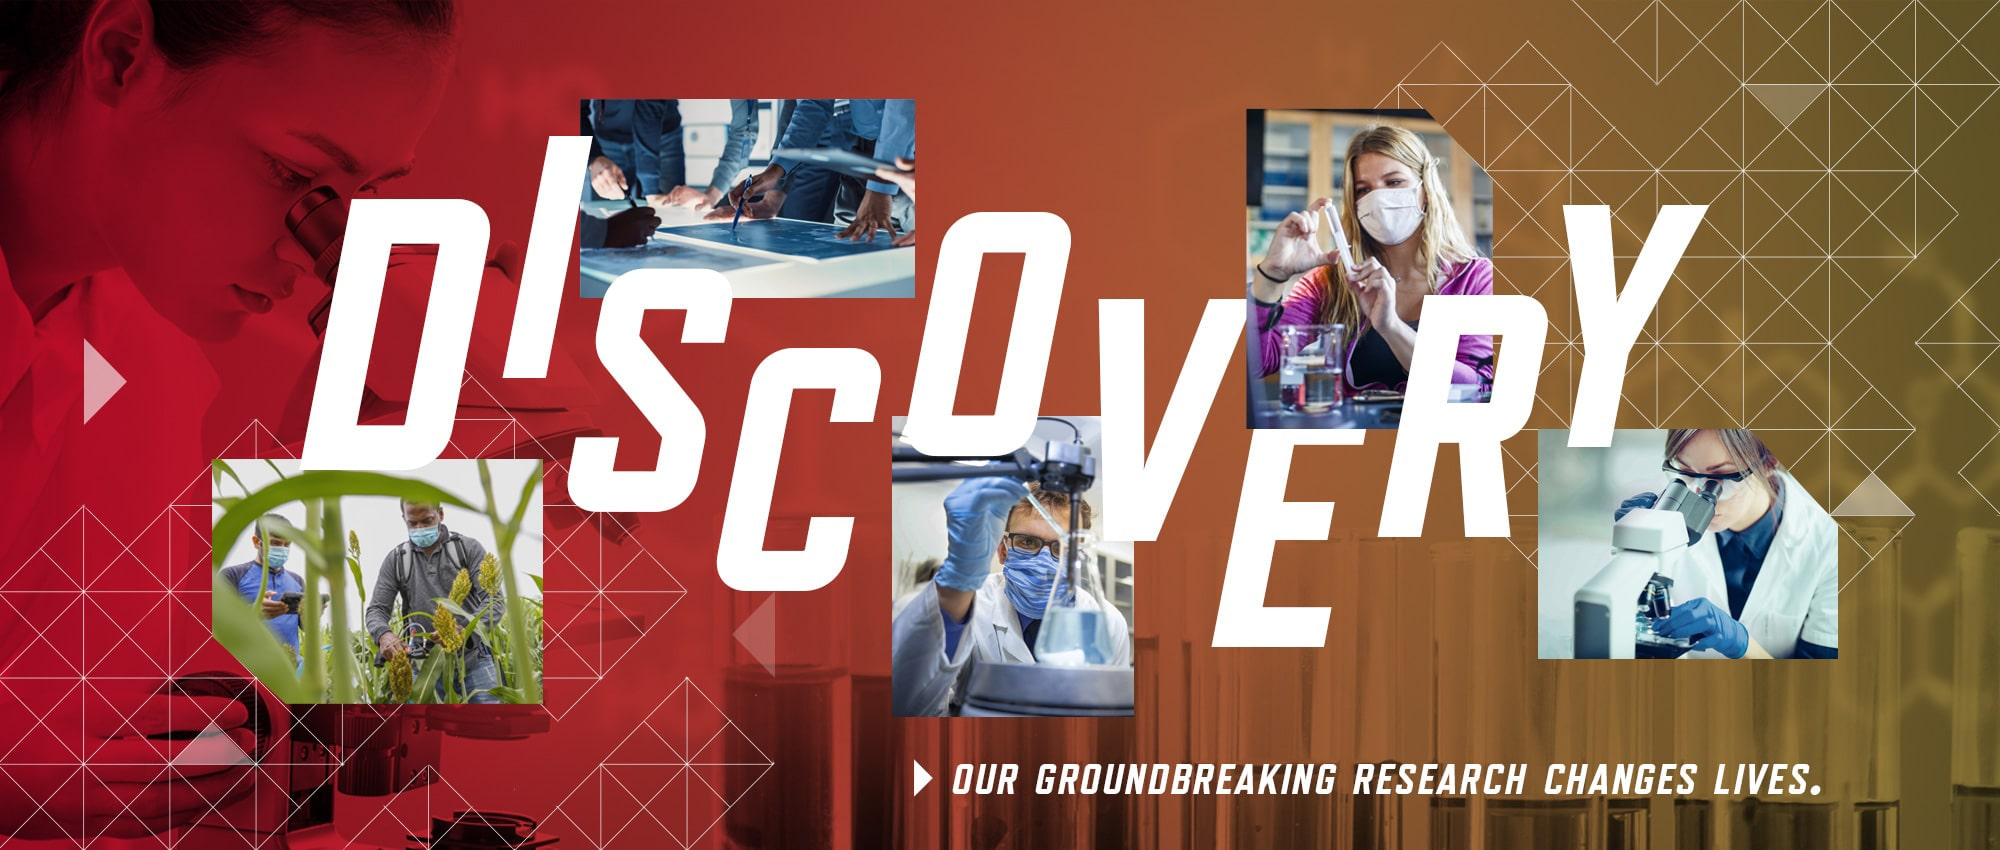 discovery: our groundbreaking research changes lives